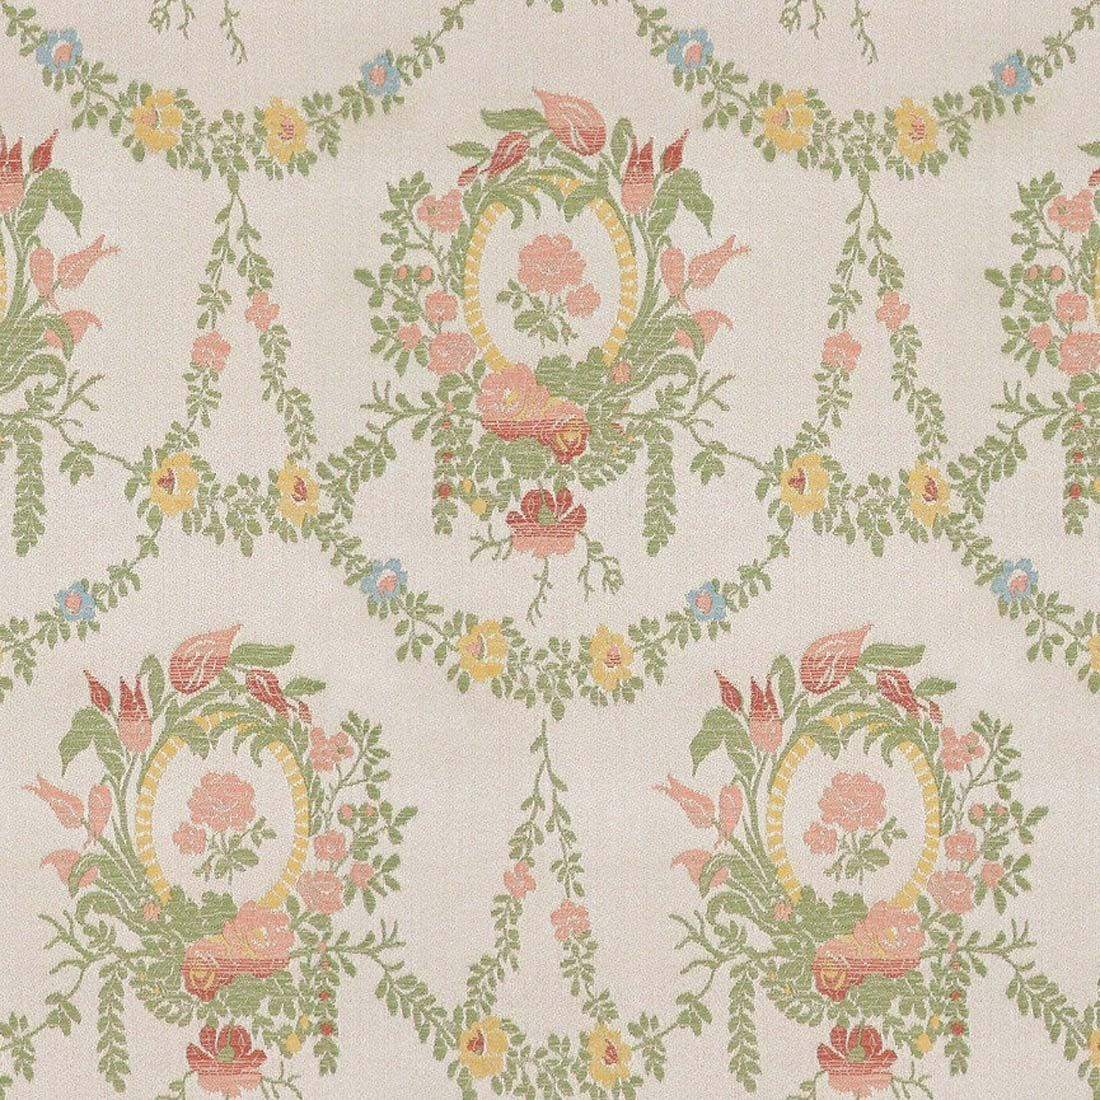 Edwardian Fawn Flat Weave Curtains And Upholstery Fabric Edwardiana Vivace From Loome Fab With Images Upholstery Fabric Uk Upholstery Fabric Printing On Fabric